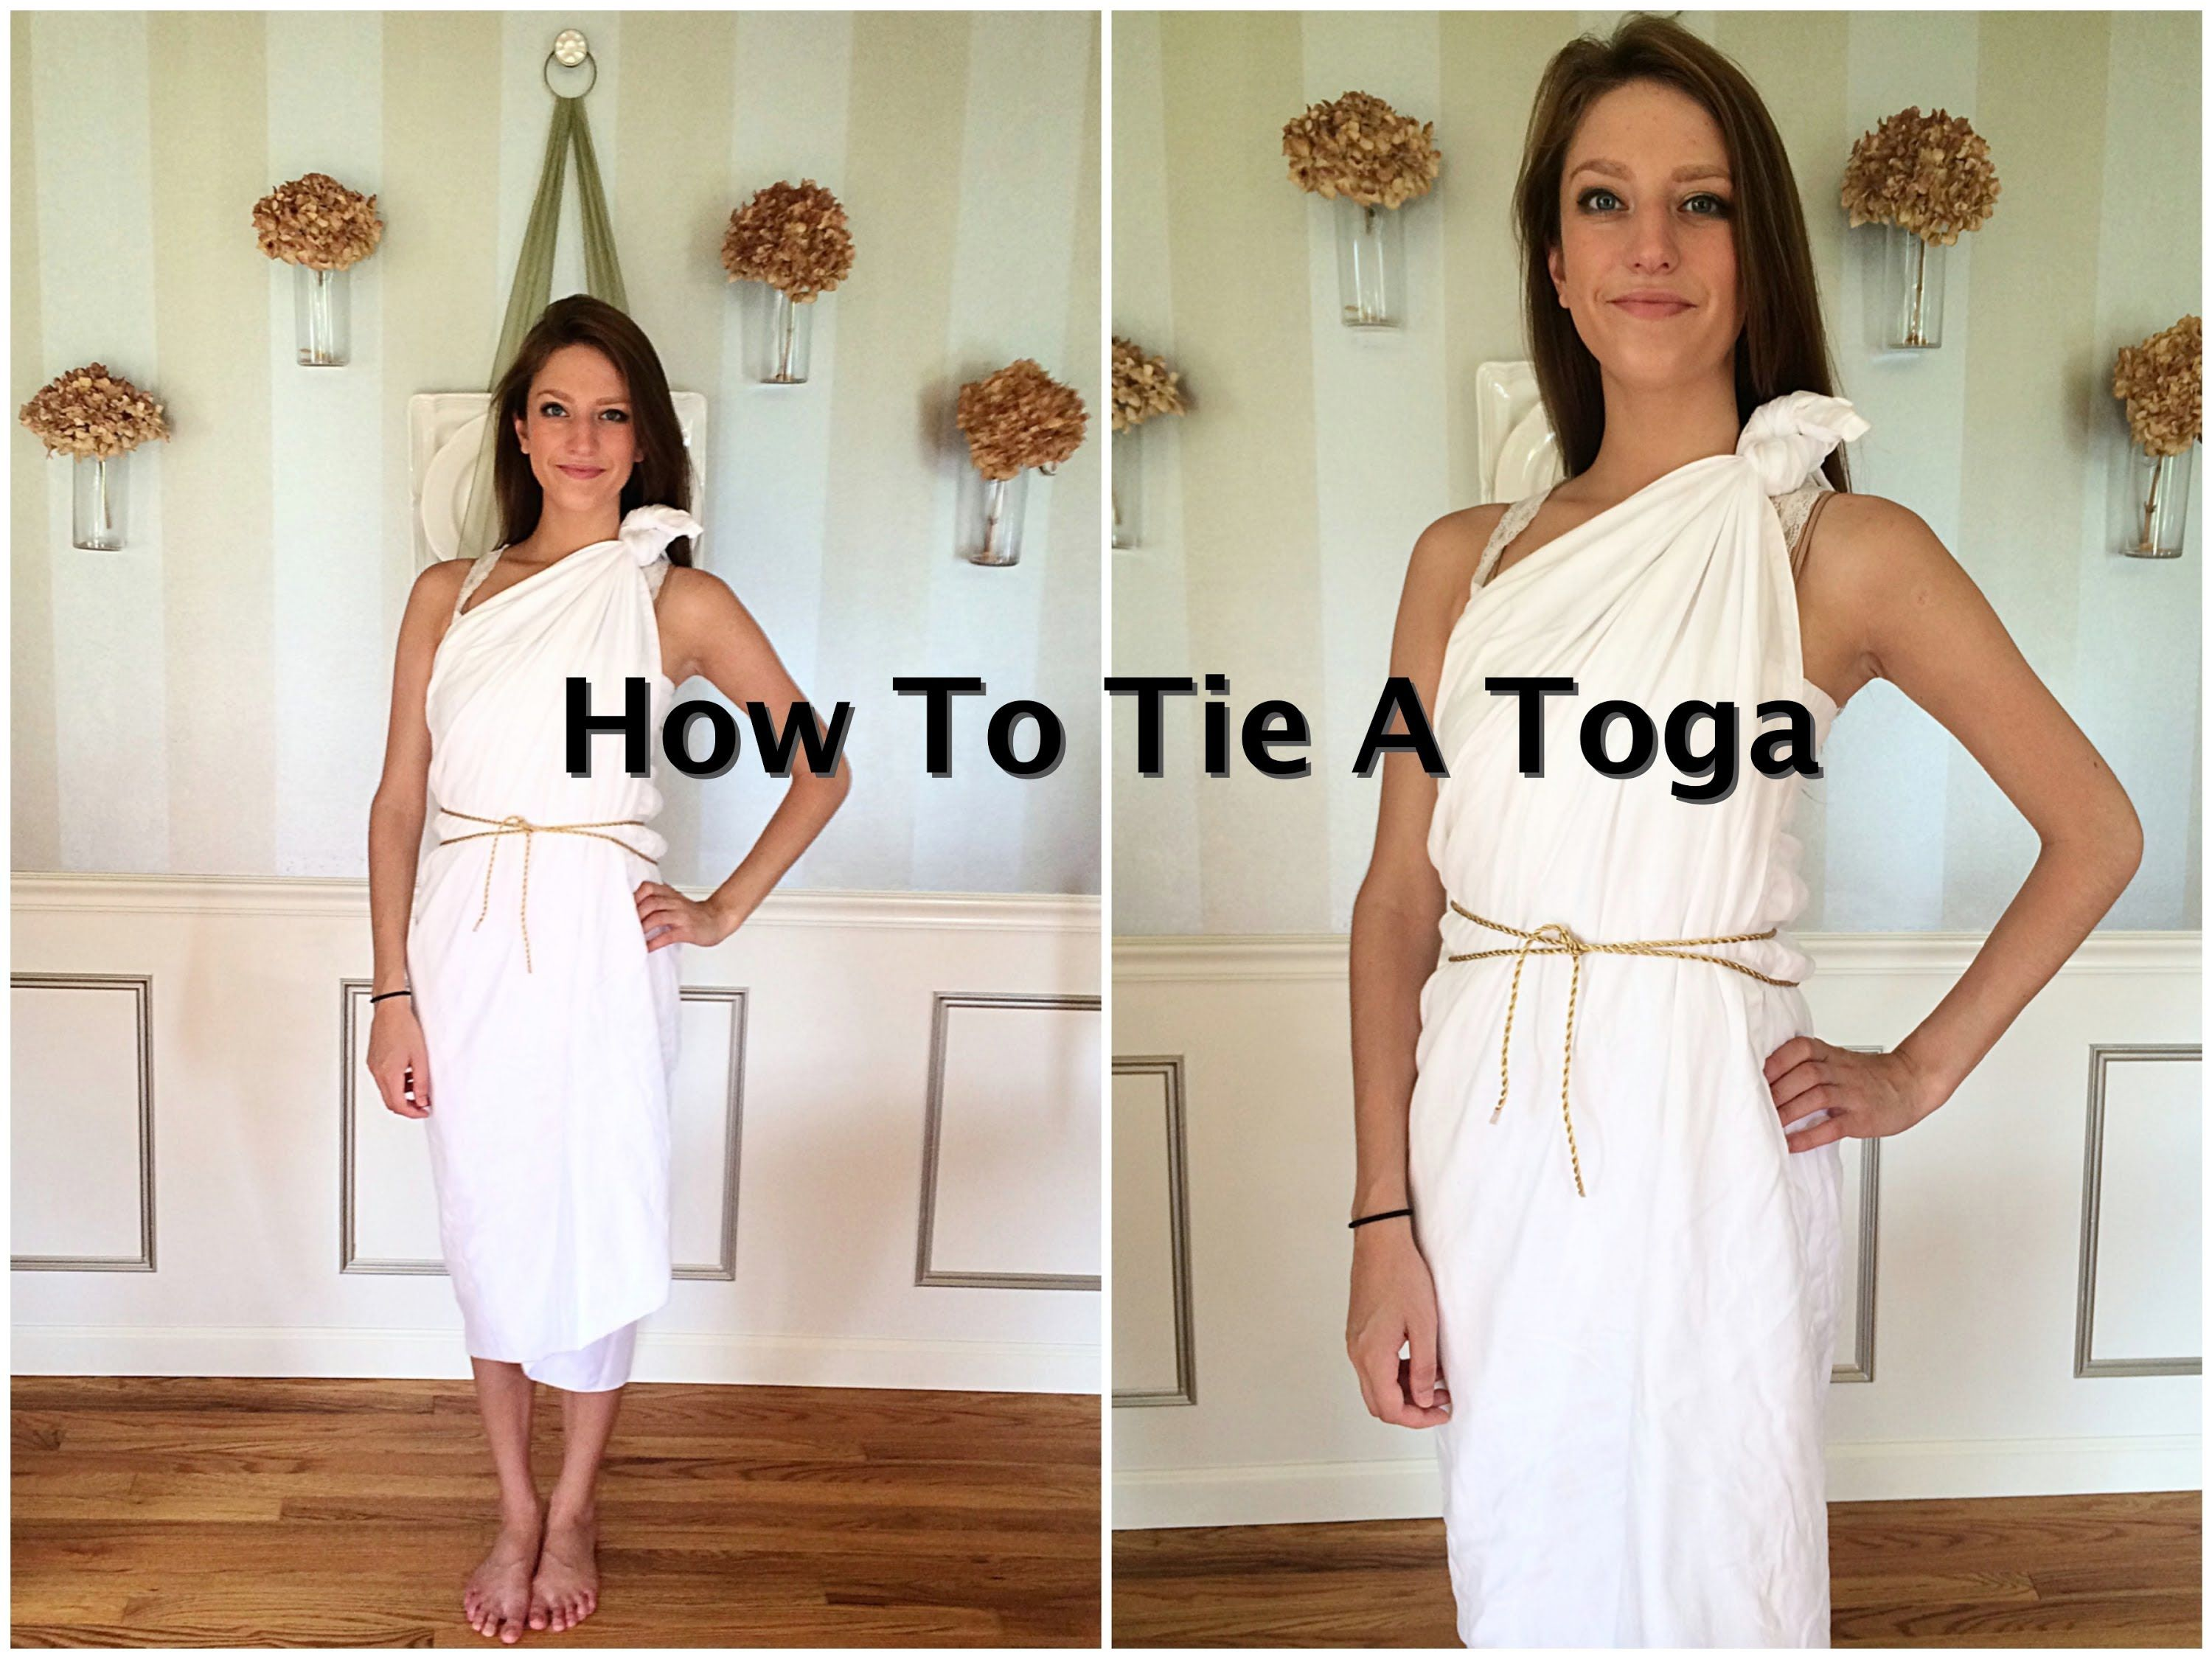 How to tie a toga tutorial diy and crafts pinterest tutorials heres a short video on how to tie a toga my mic wasnt working so there is no voiceover but the steps are in the video thumbs up if you liked it solutioingenieria Gallery